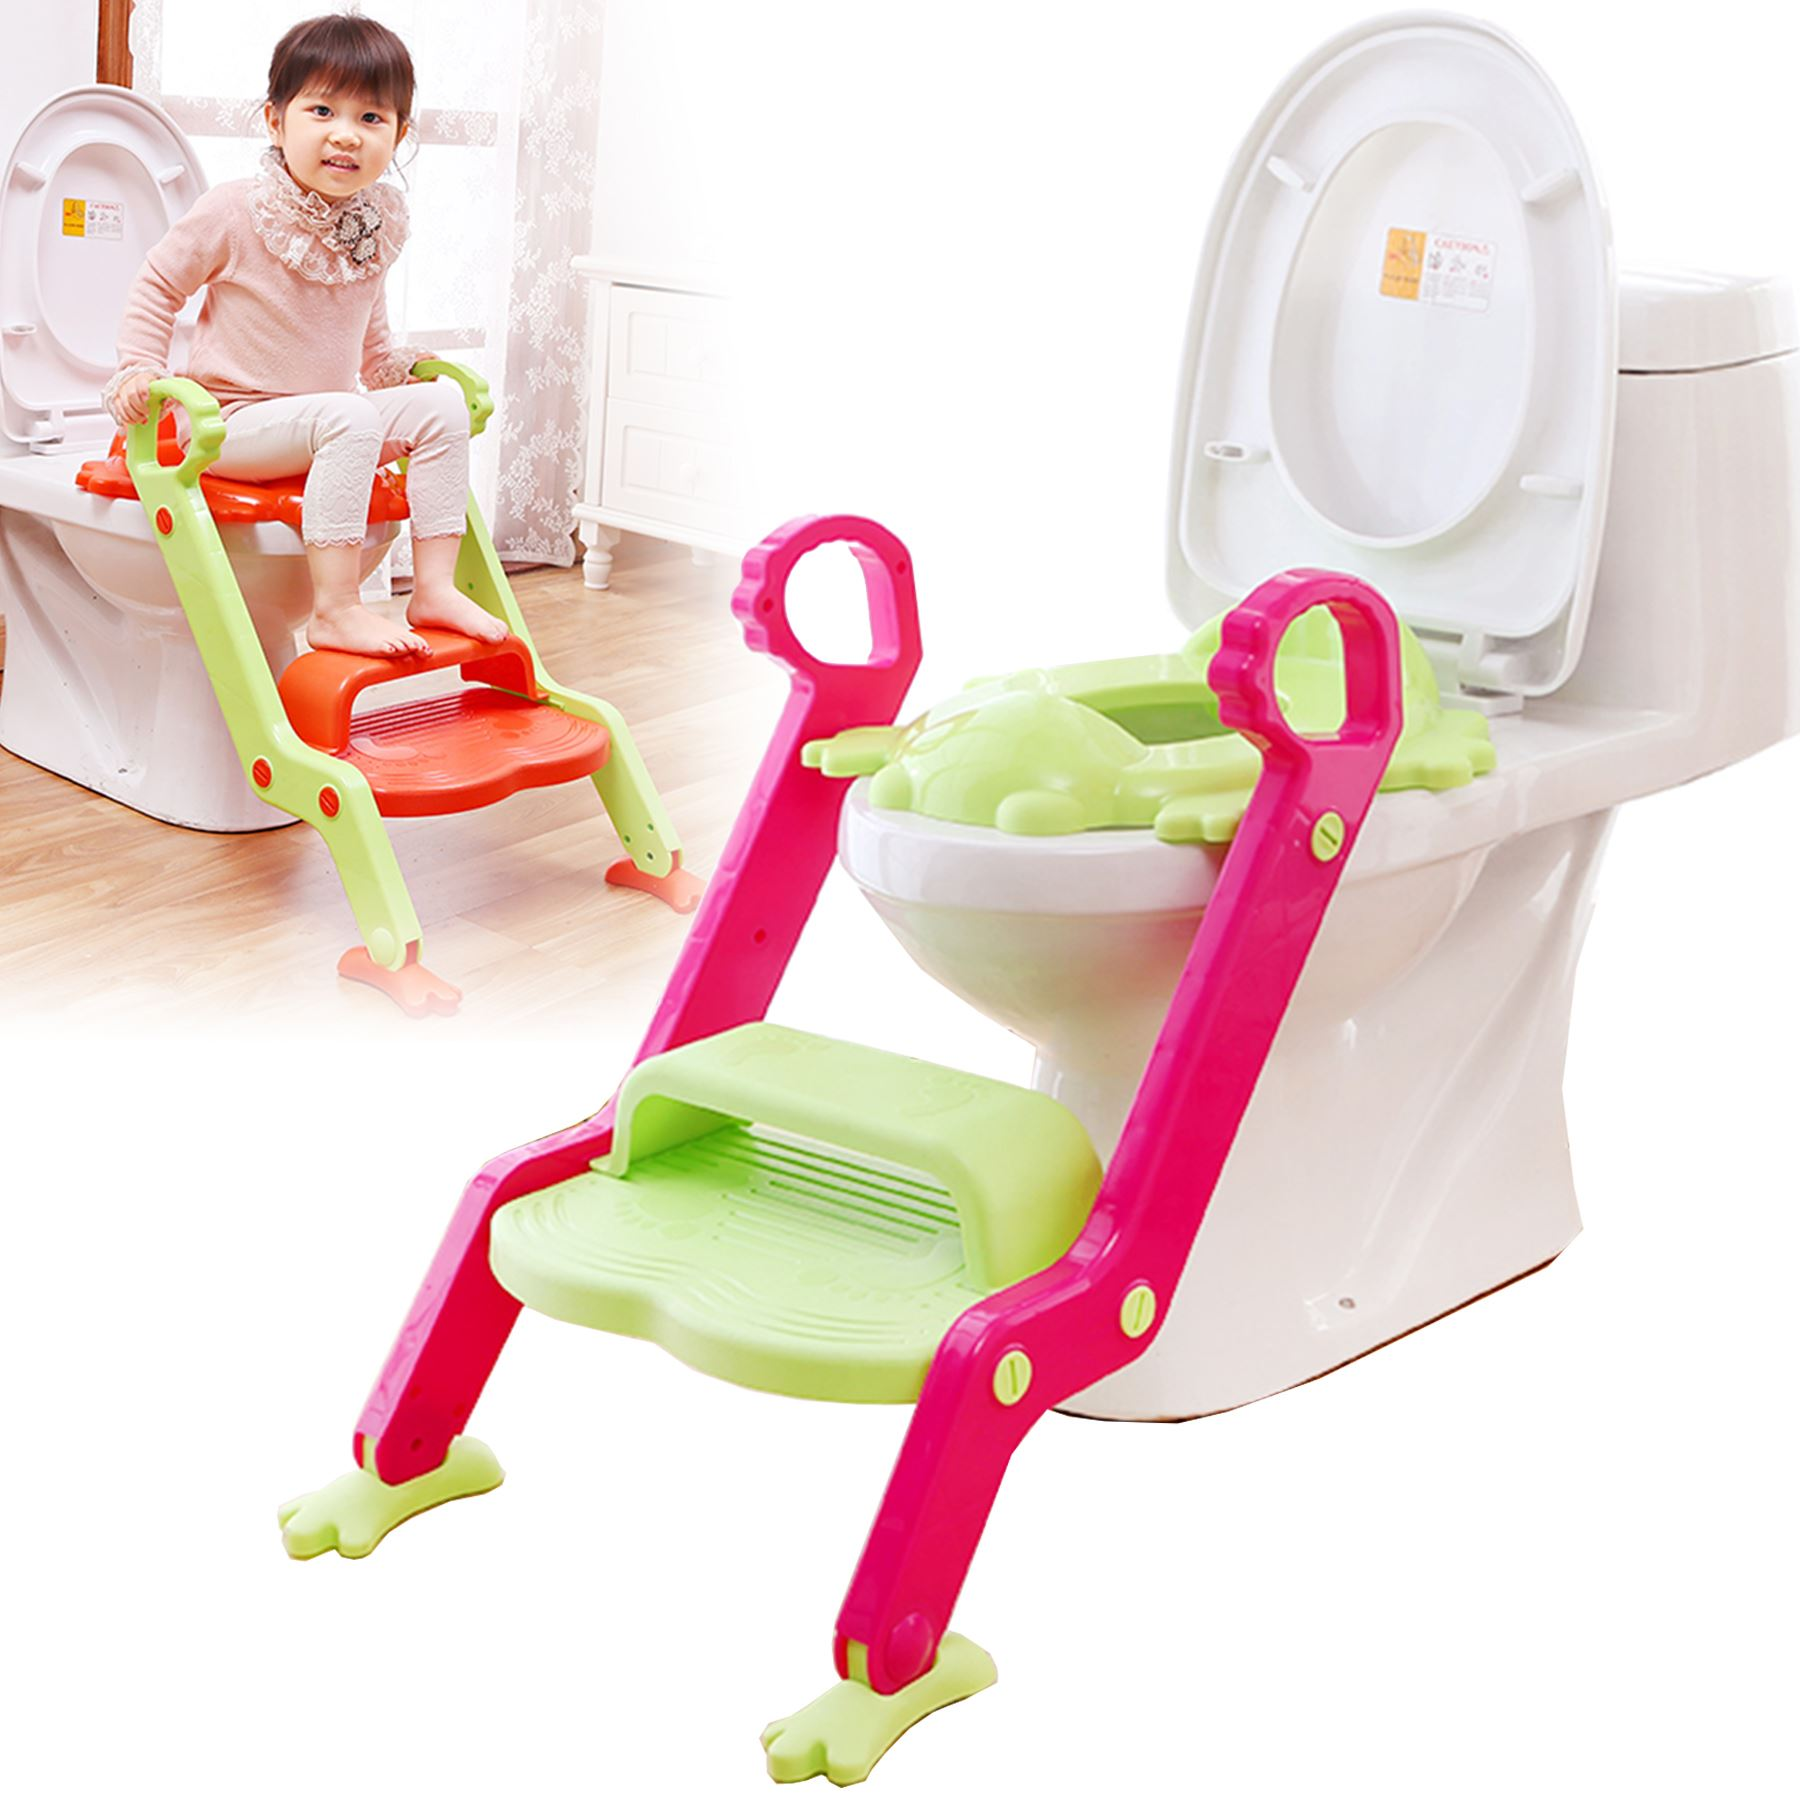 Baby Toddler Toilet Training potty Seat 2 step Ladder